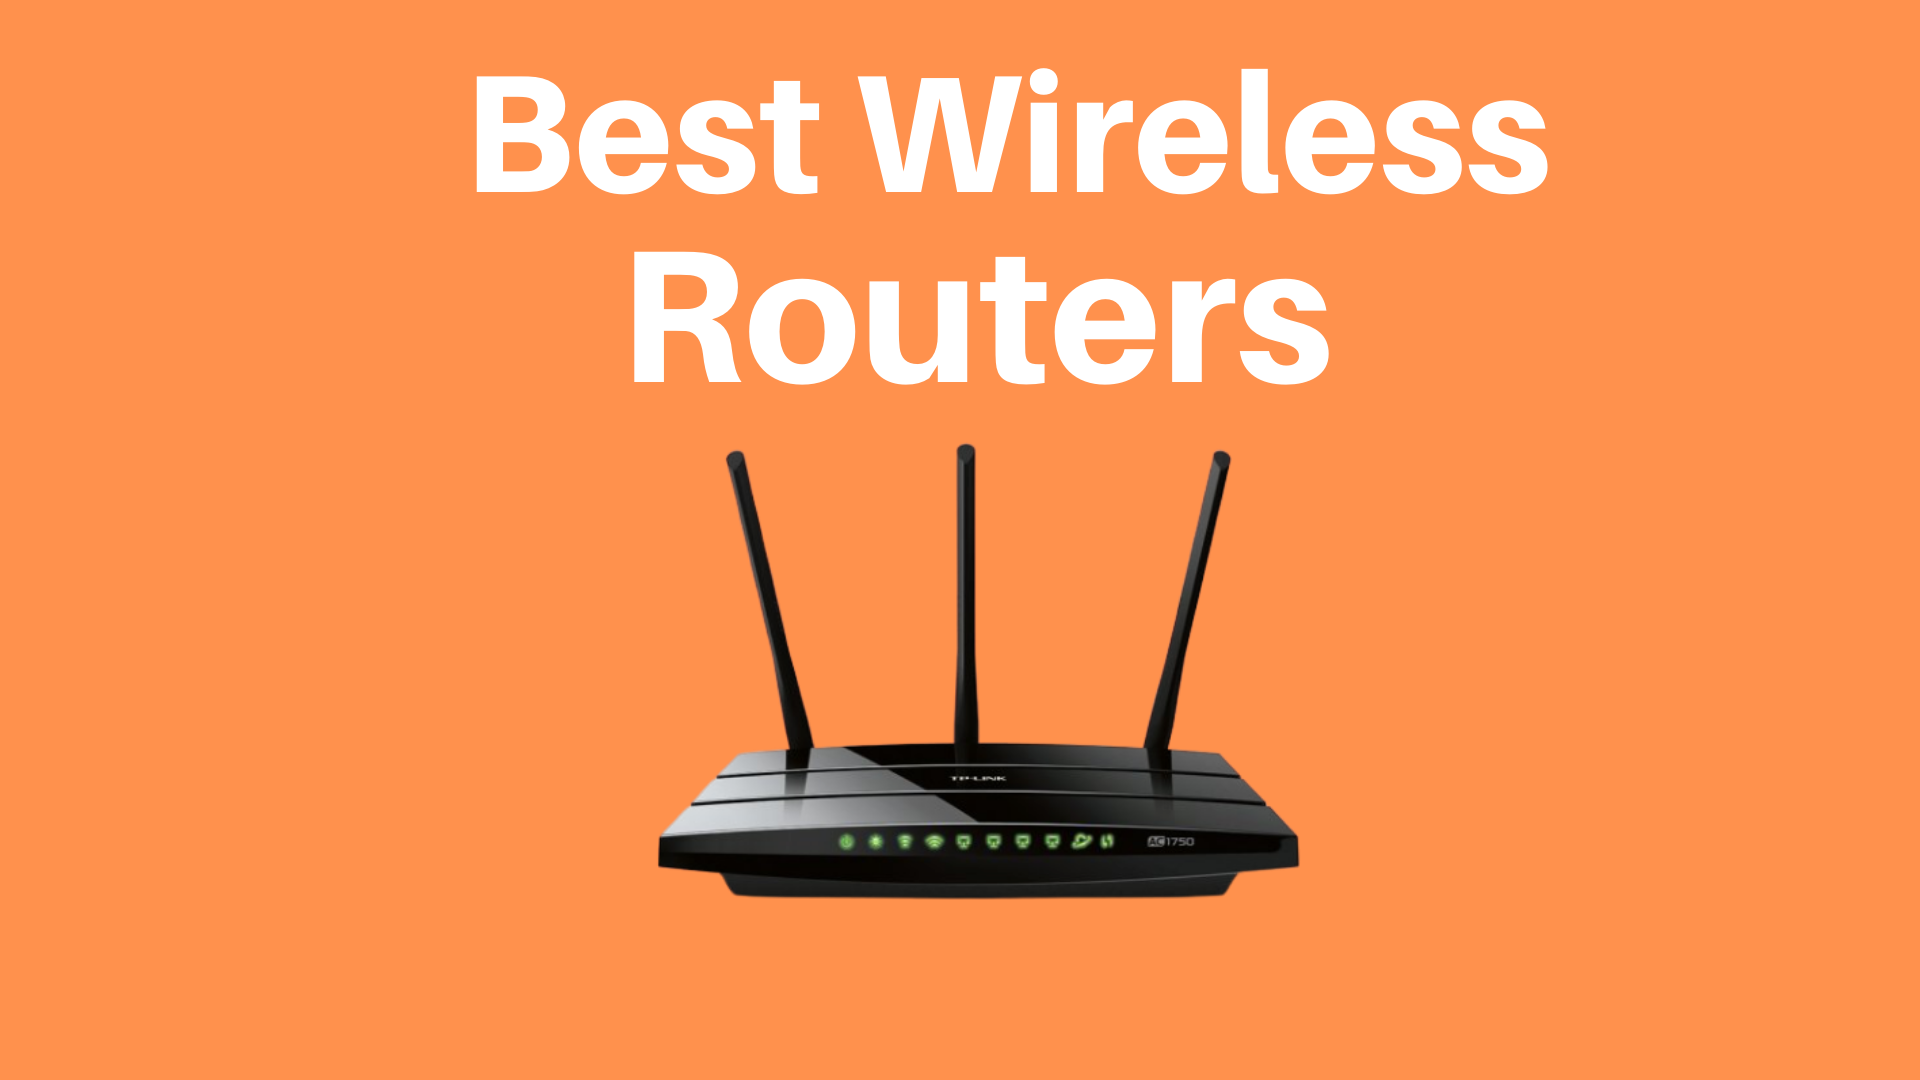 Best Wireless Routers 2021 Pin on Best Products